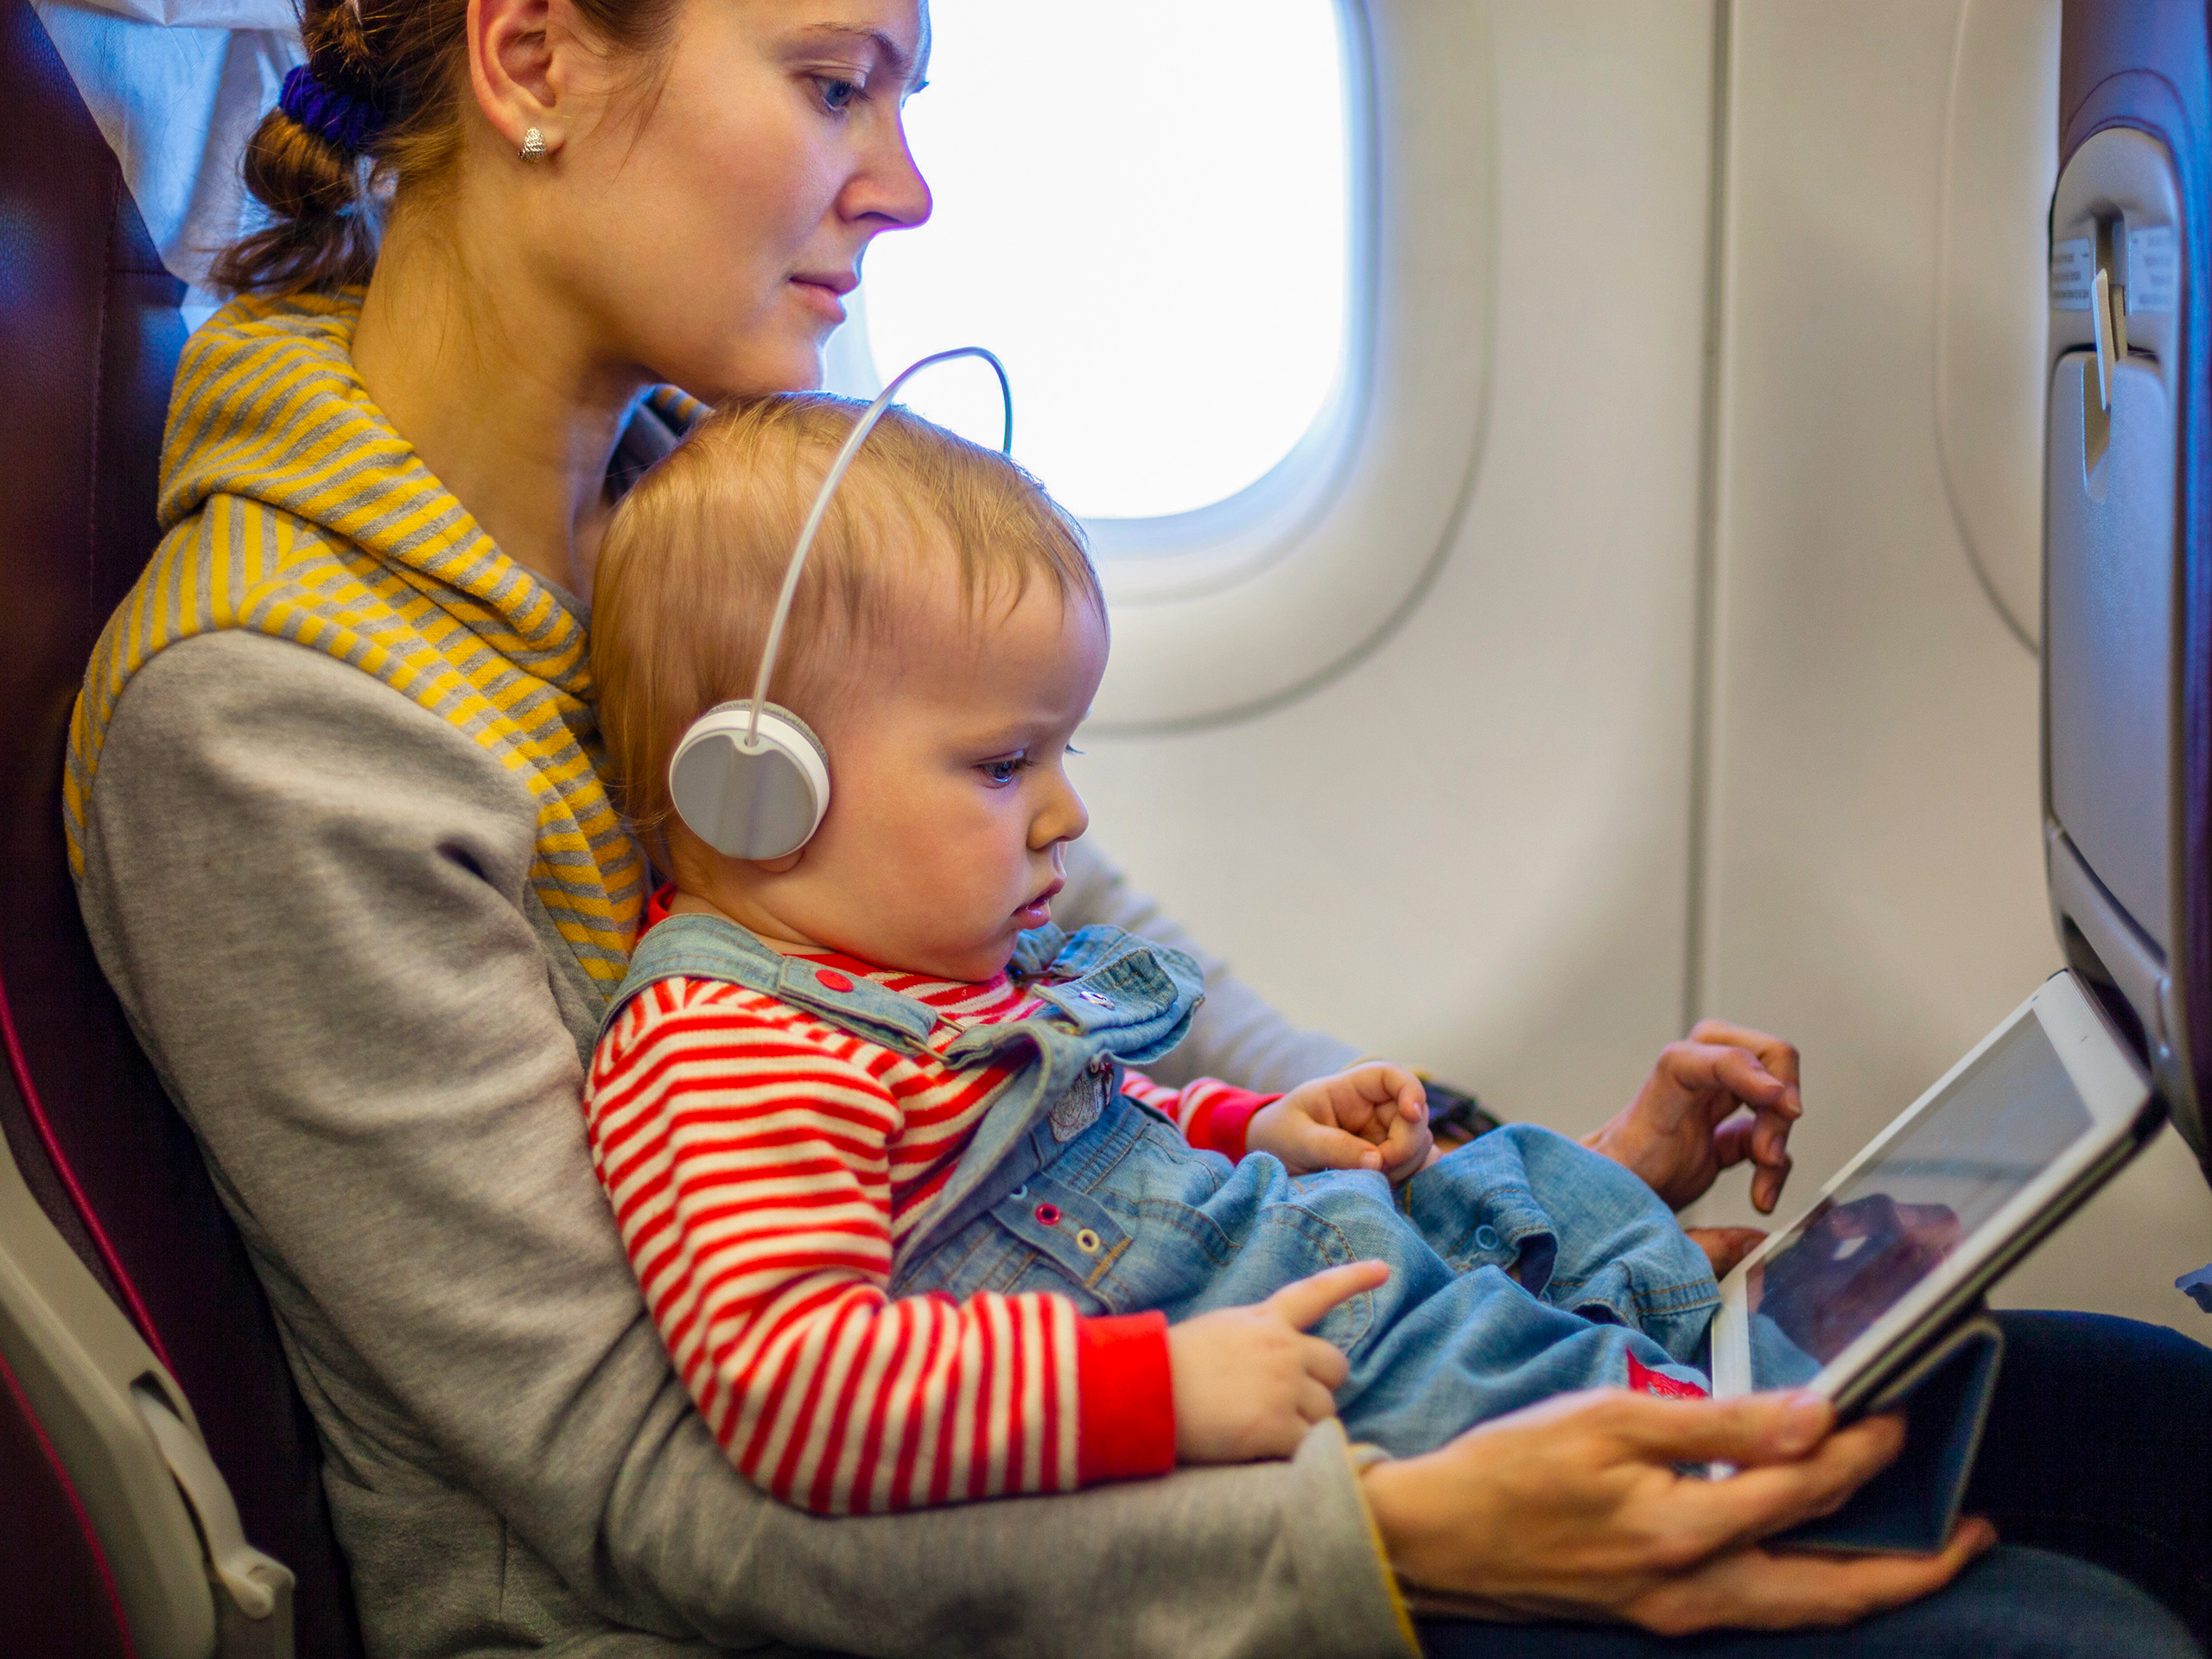 mother and toddler son using tablet pc while on board of airplane; Courtesy of Photobac/Shutterstock